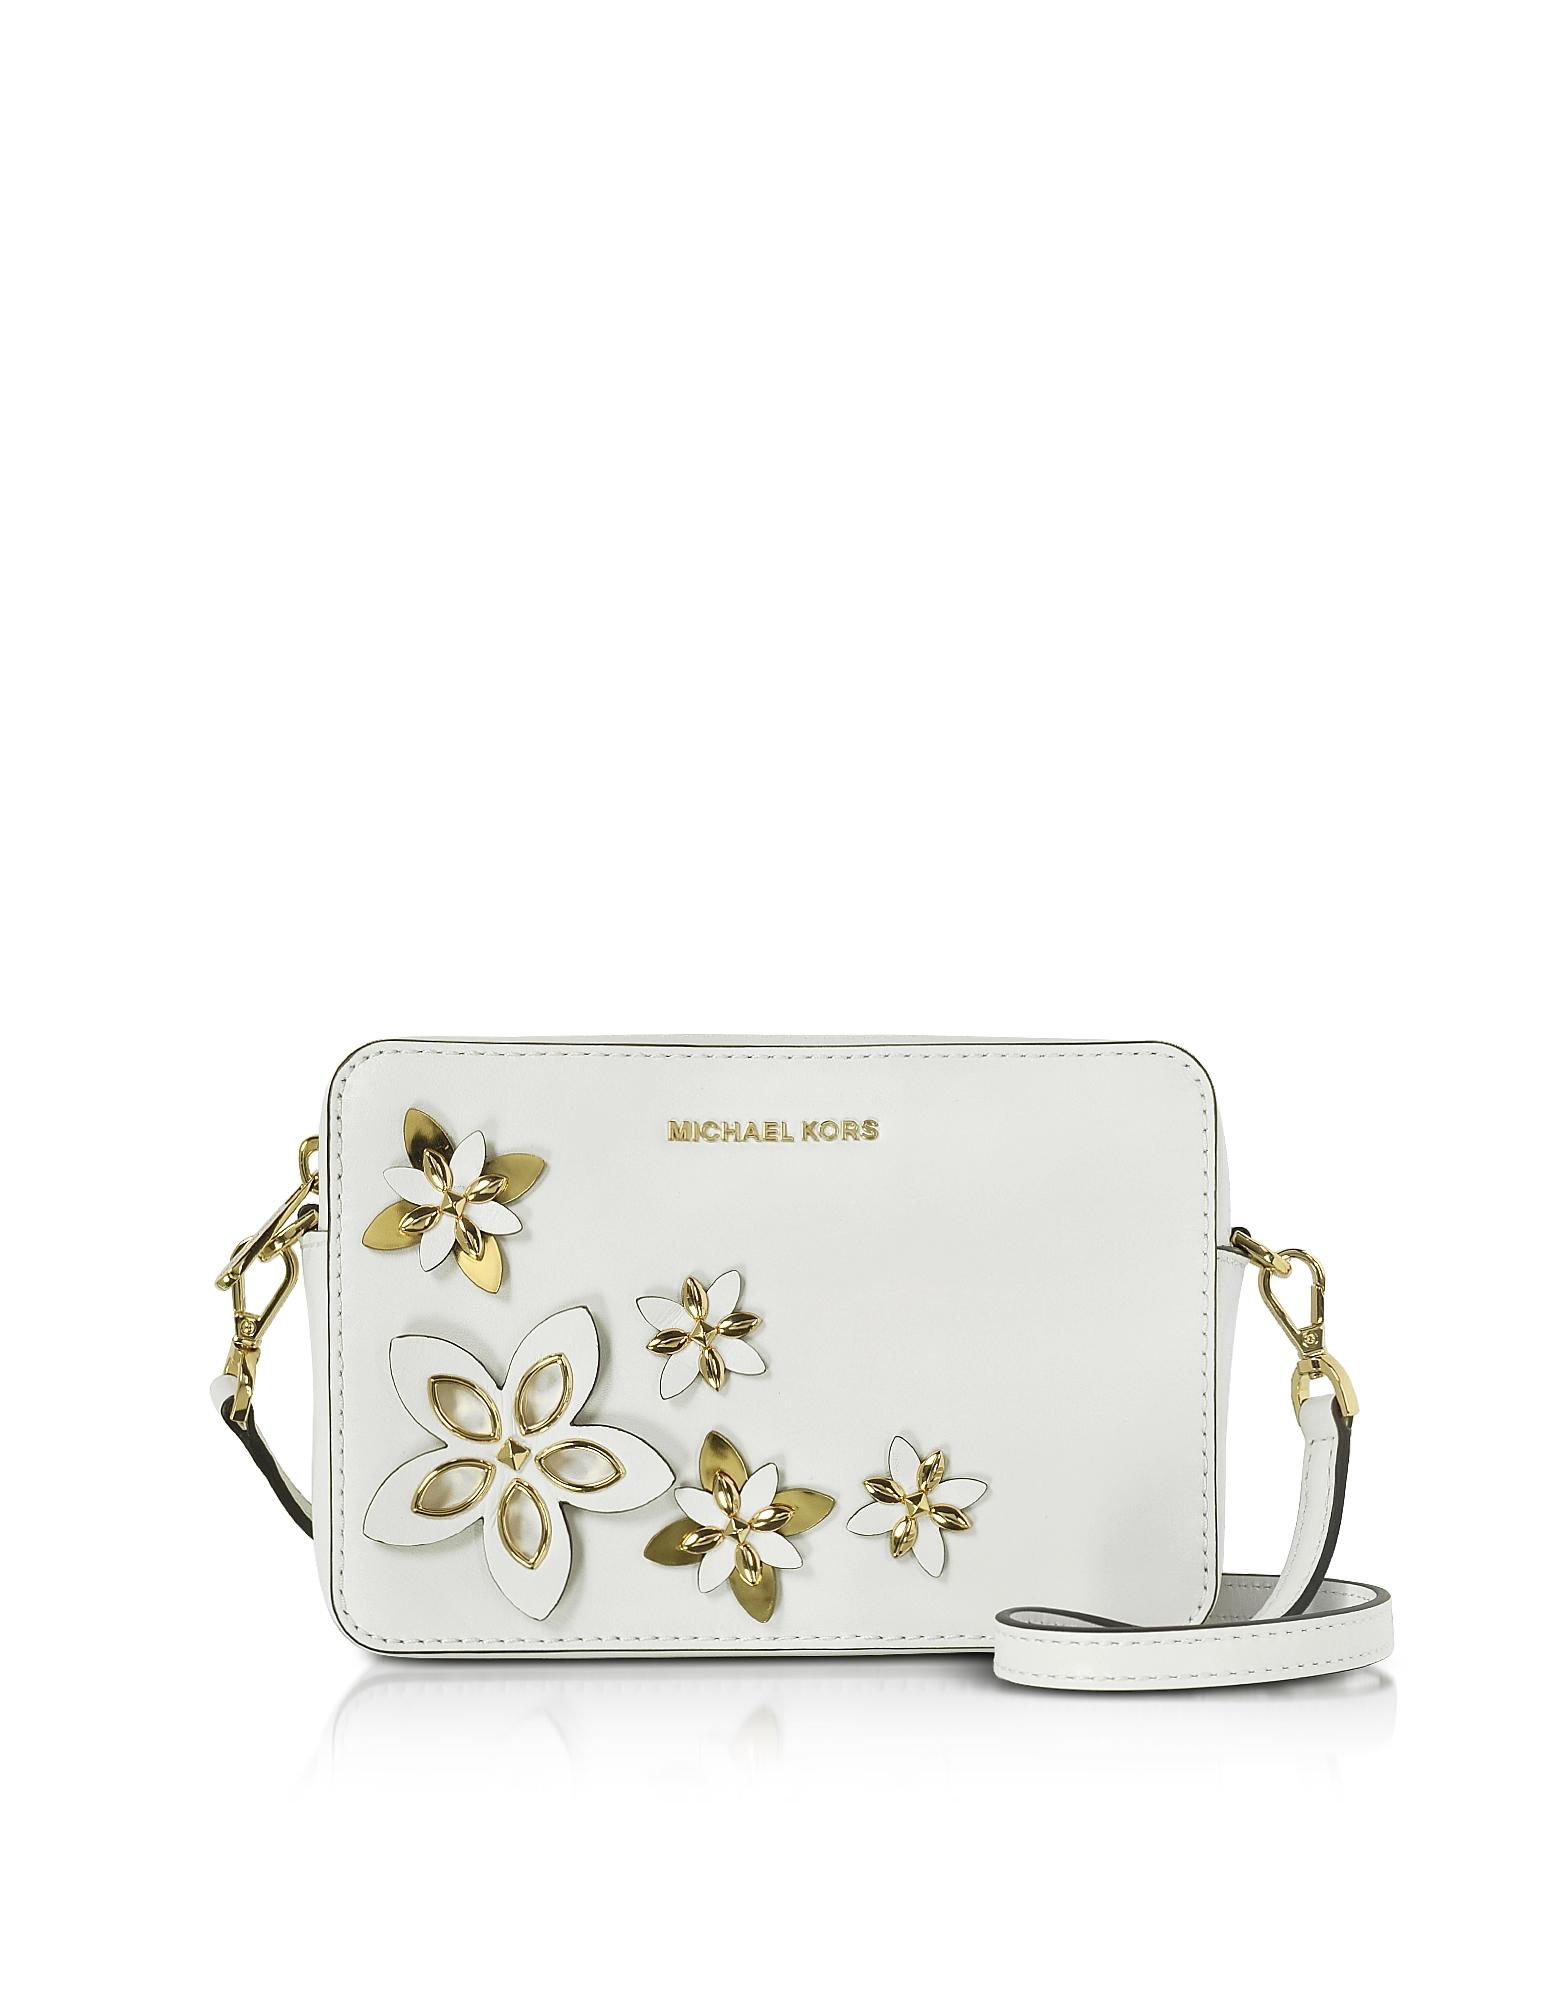 Michael Kors Flowers Pouches Medium Leather Camera Bag In White | Lyst